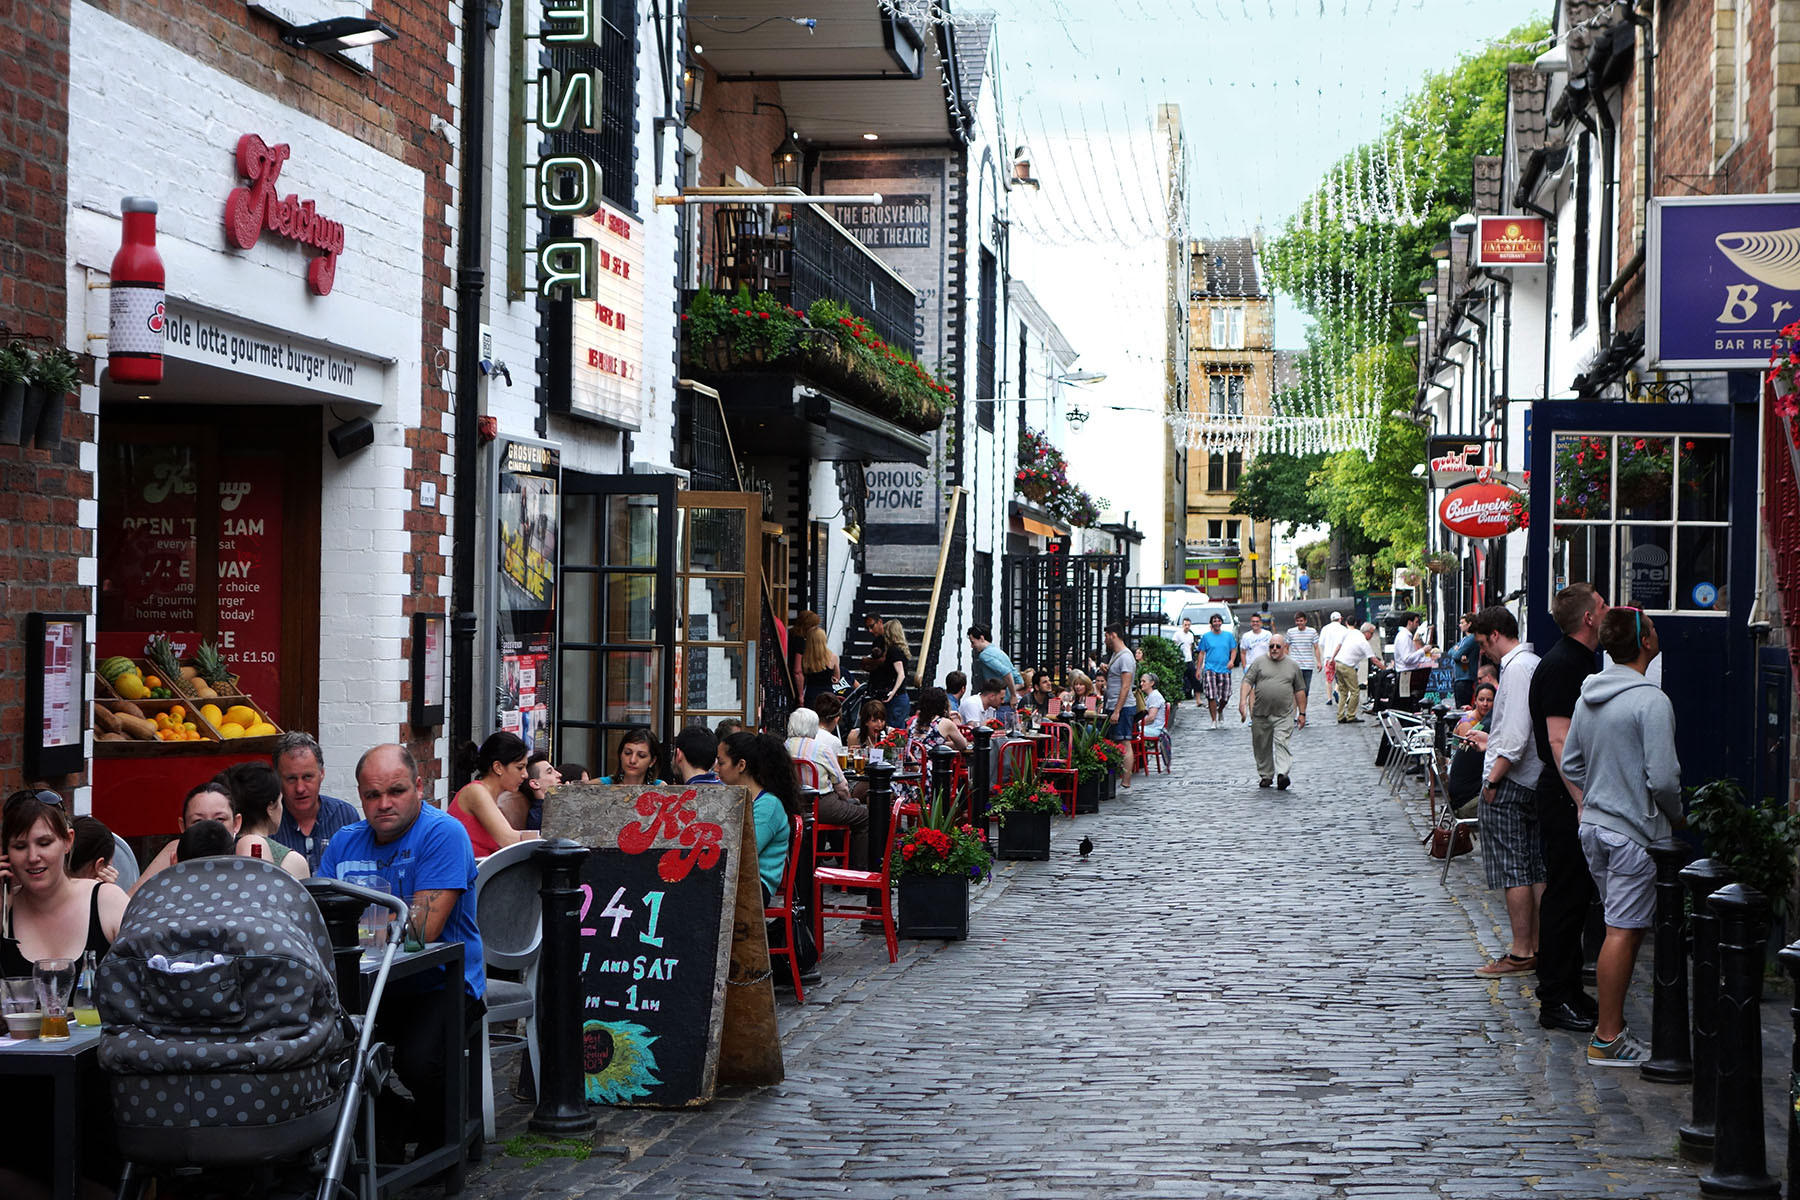 Ashton Lane is lined with an array of restaurants and bars, most with tables out front and convivial gardens in the back.